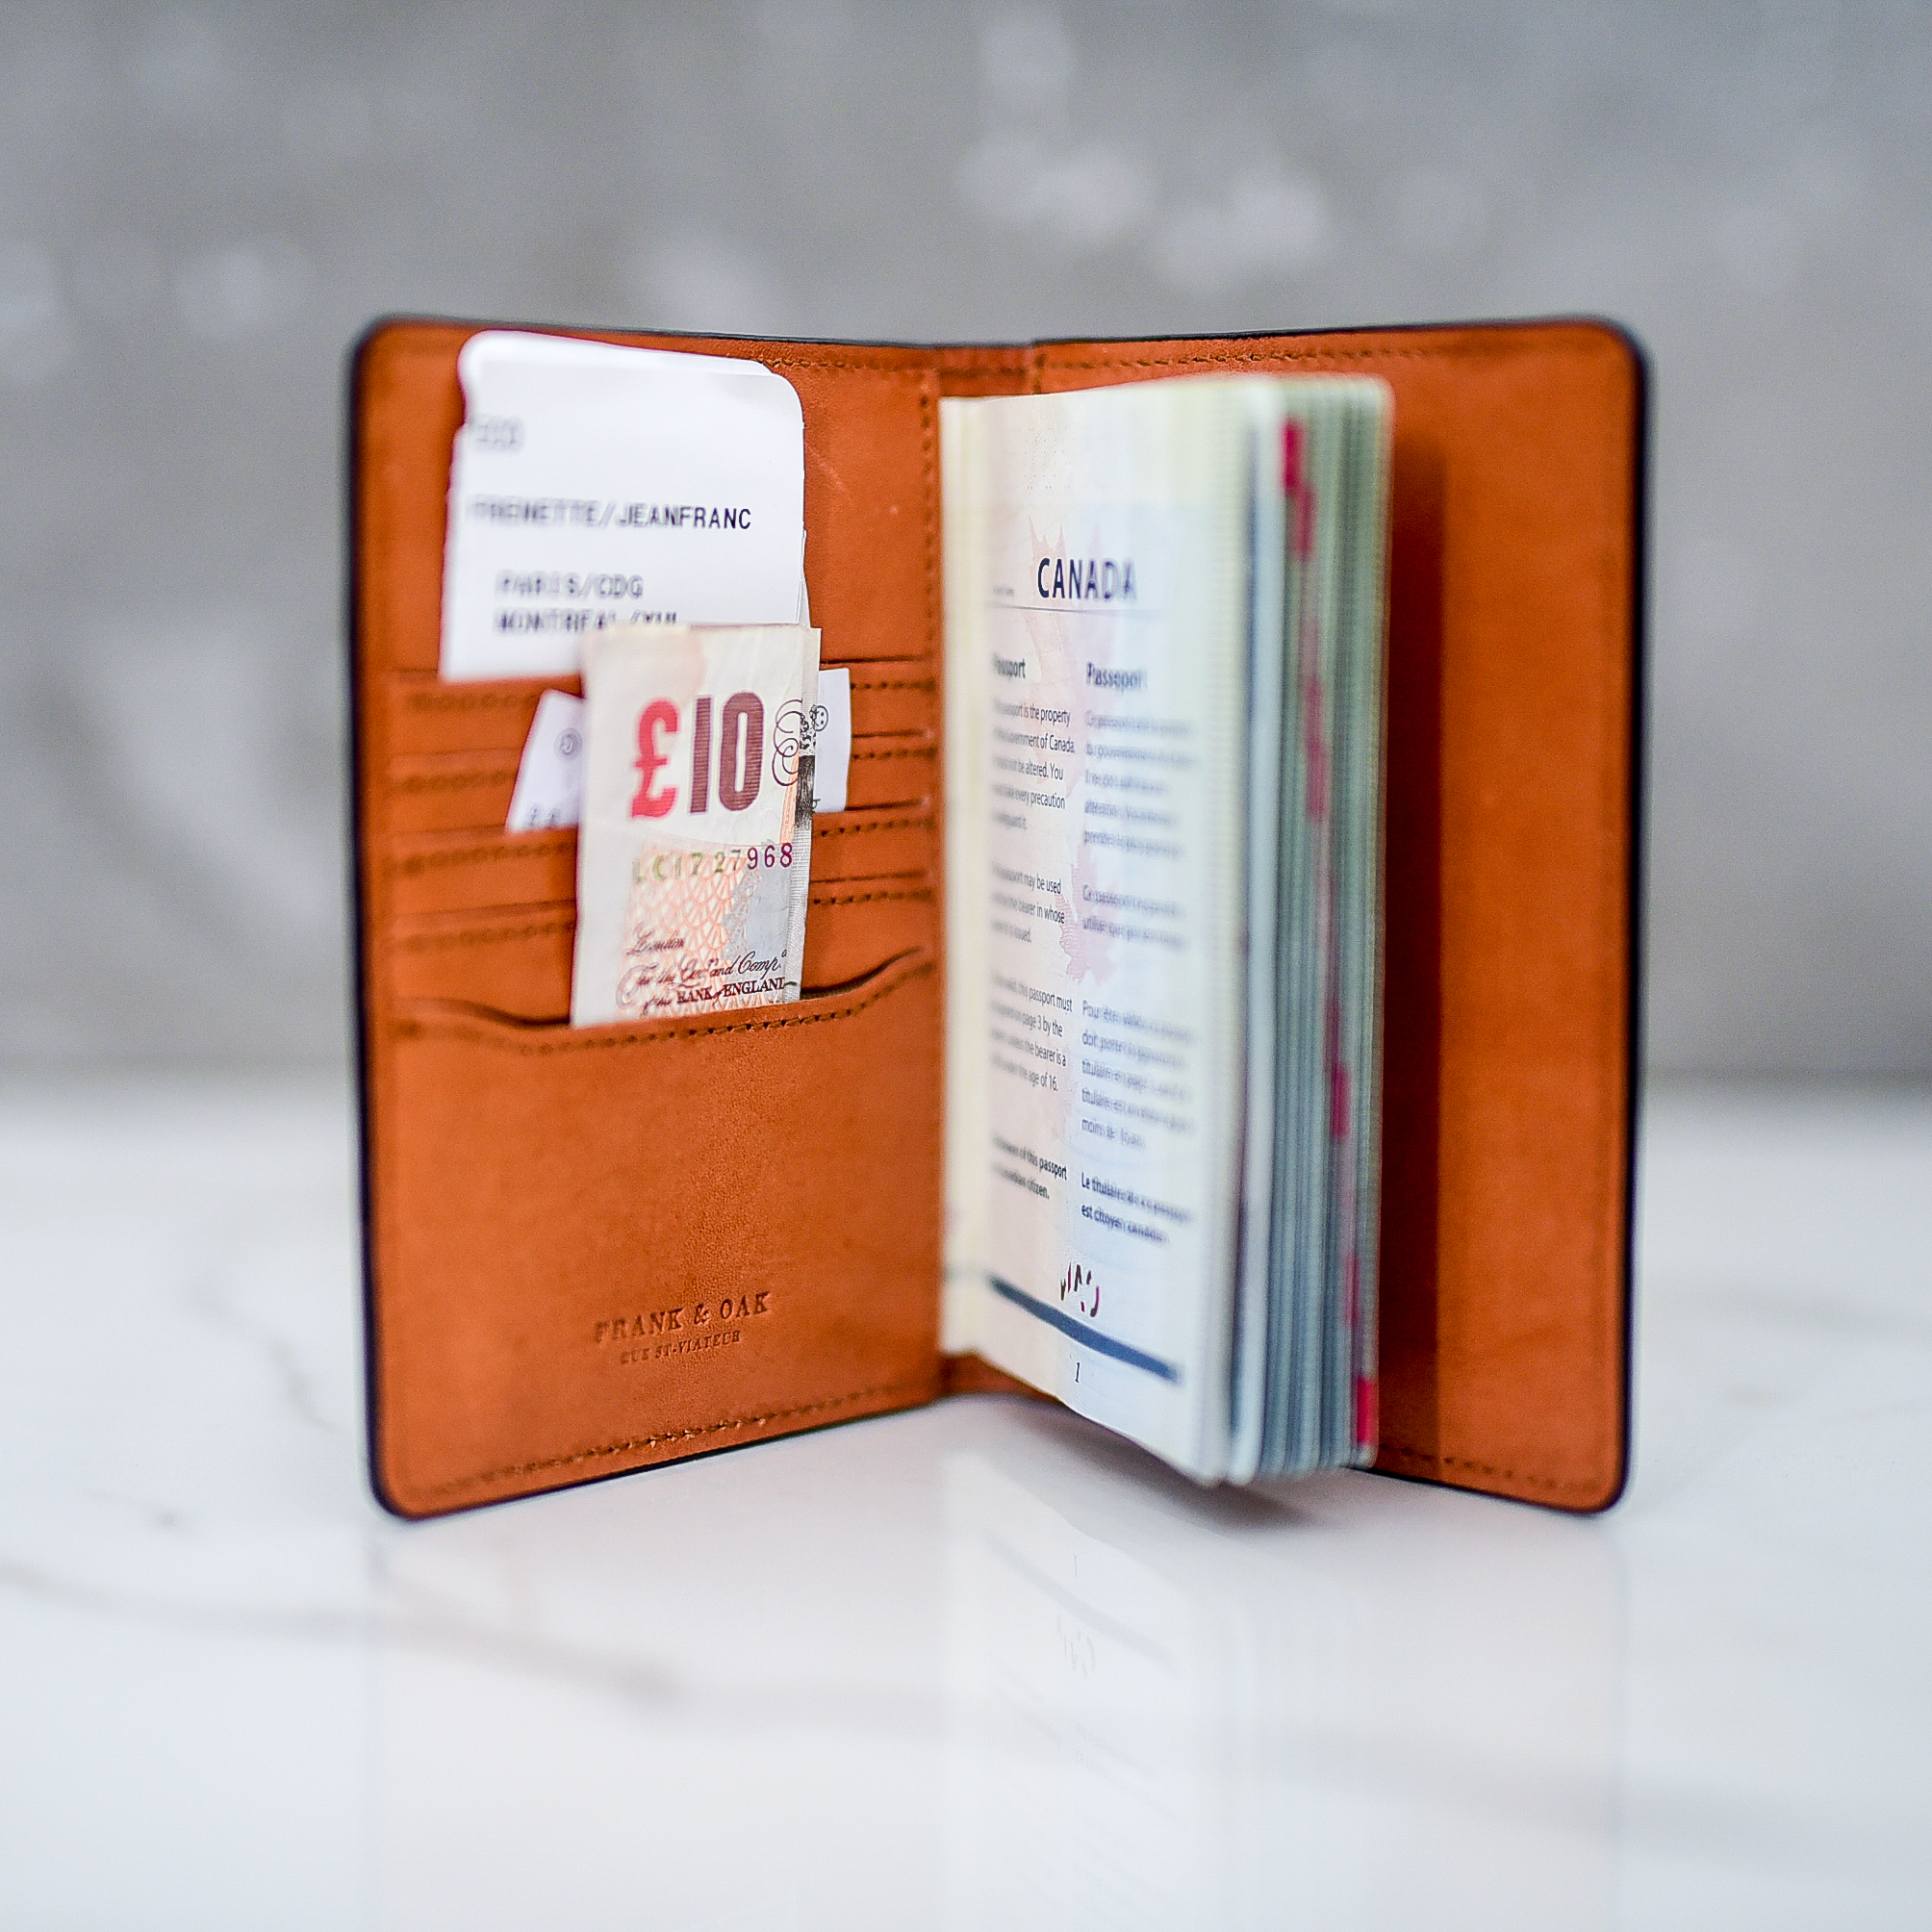 Leather passport sleeve by Frank + Oak - TRAVEL GIFT IDEAS - THE ULTIMATE GIFT LIST FOR MODERN MEN